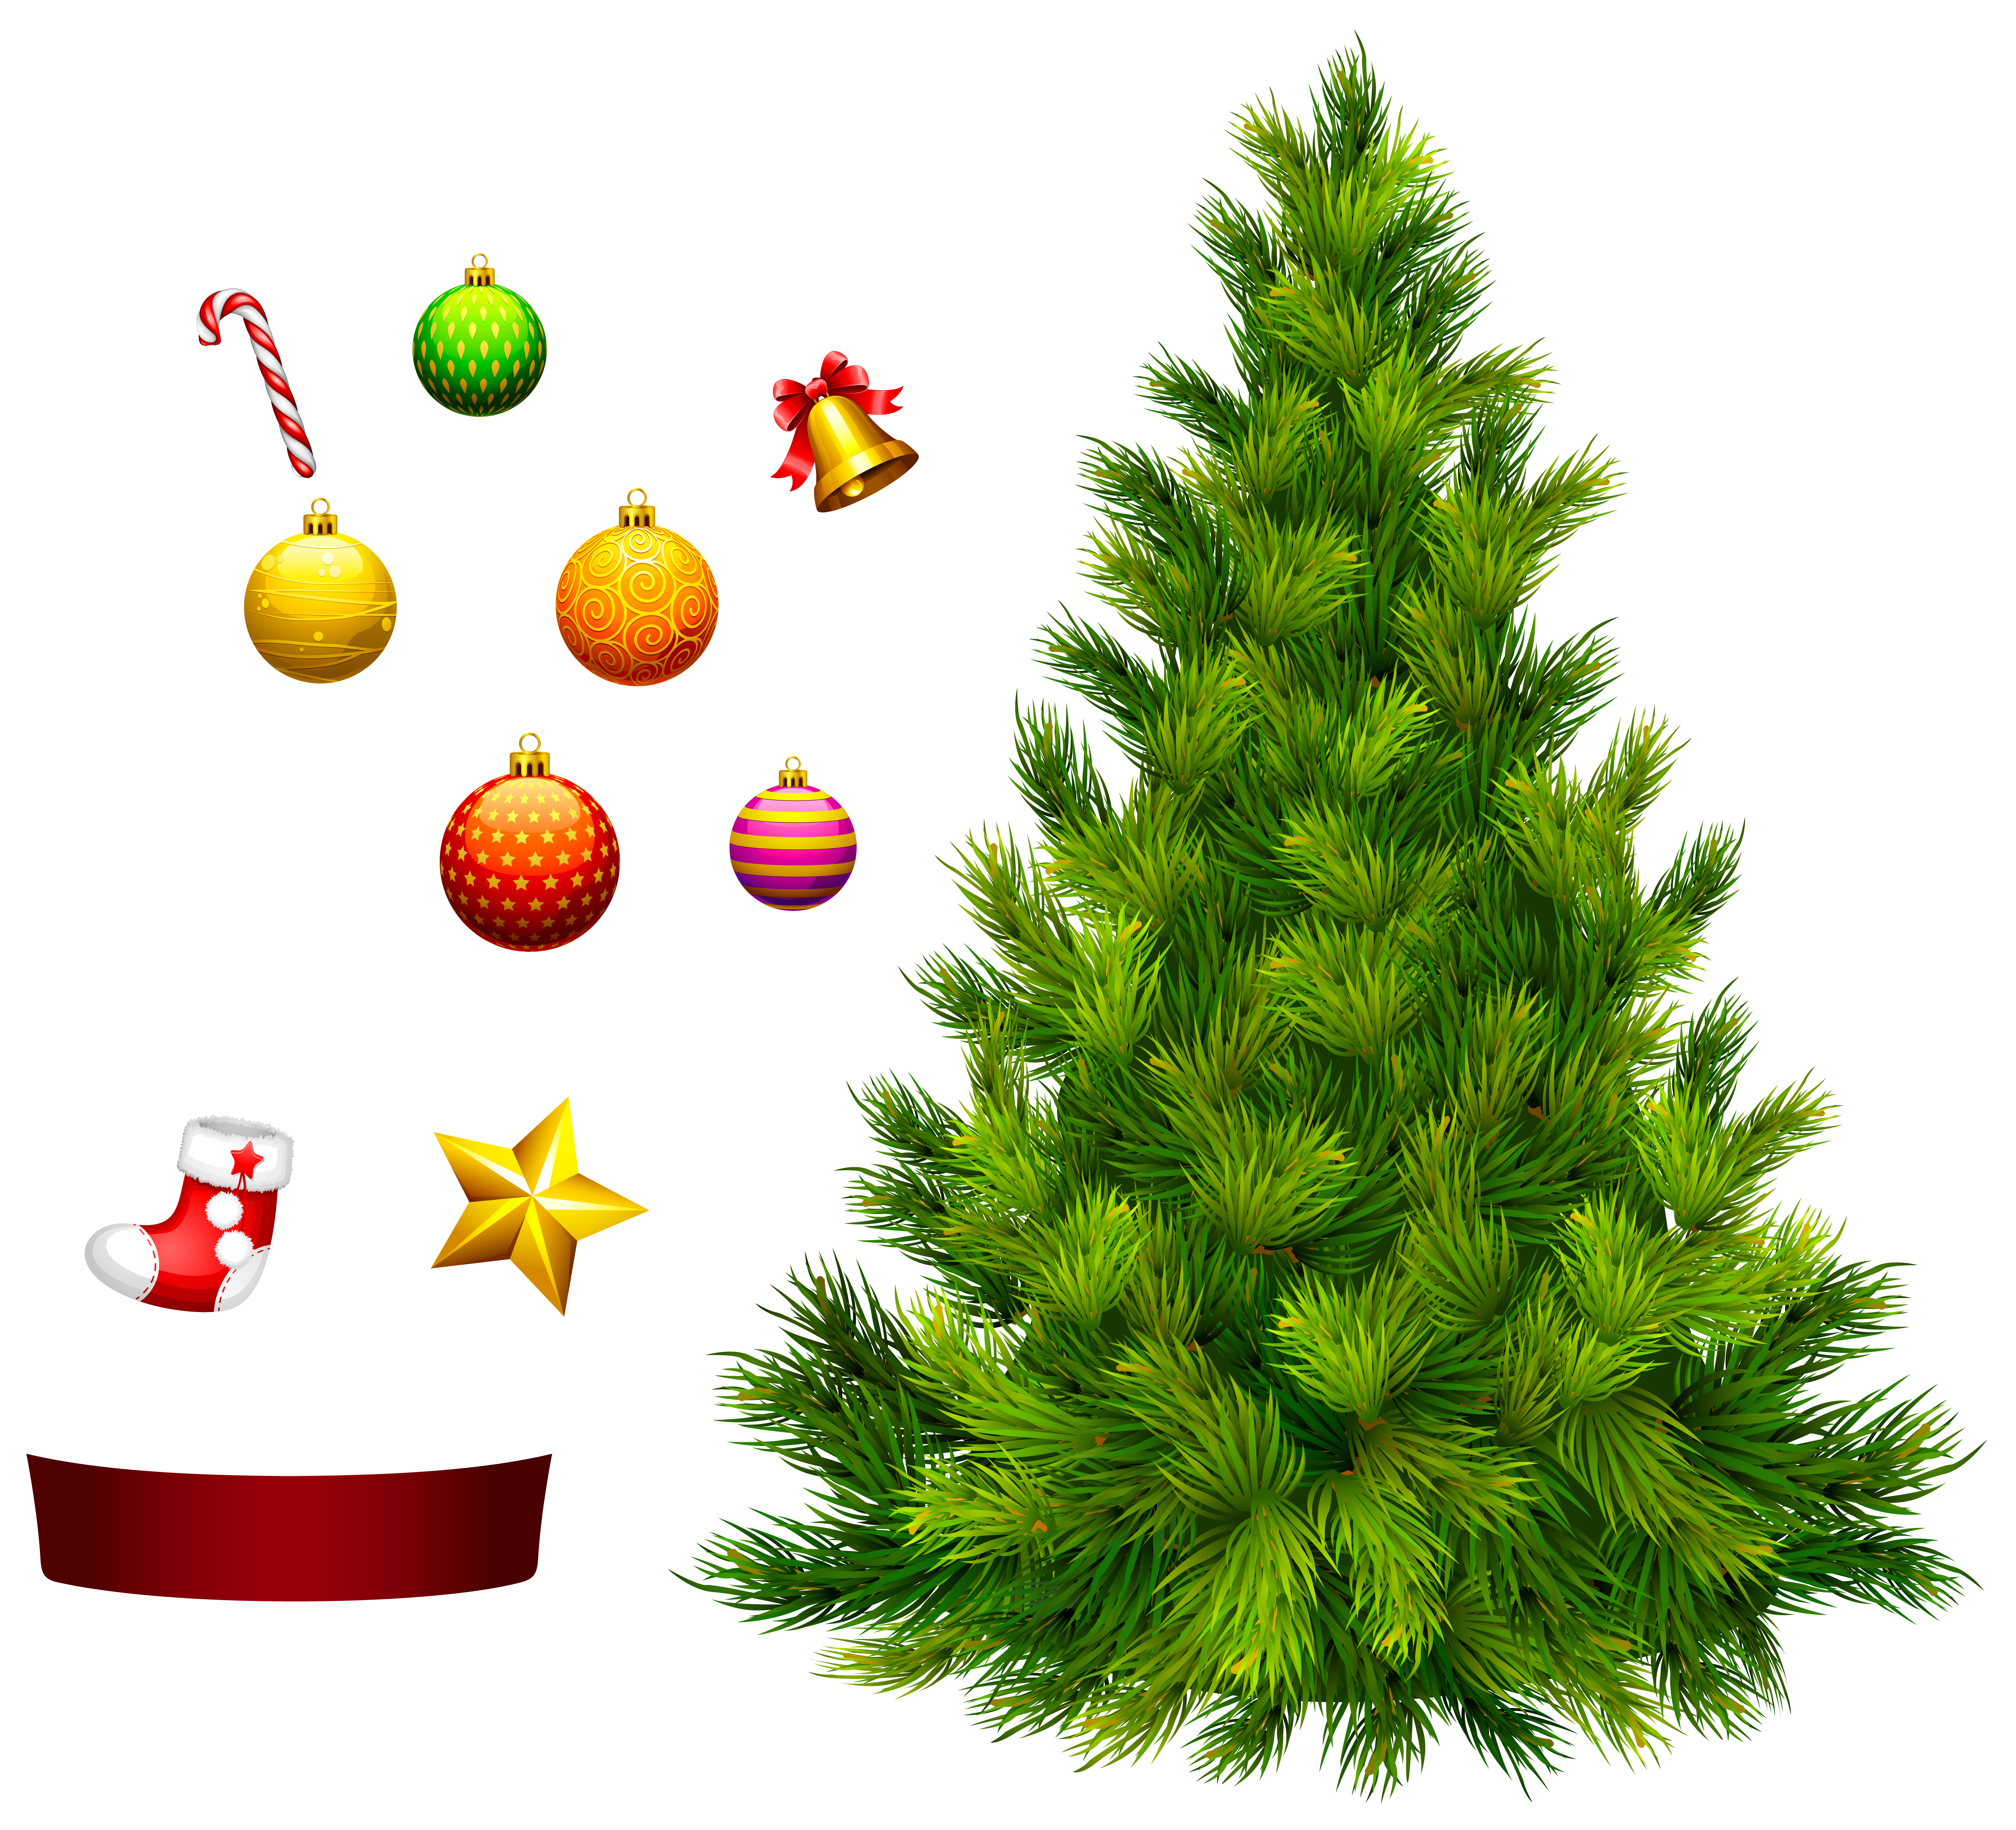 Christmas tree decorating clipart clipart library Xmas Tree for Decoration PNG Clipart | Gallery Yopriceville - High ... clipart library